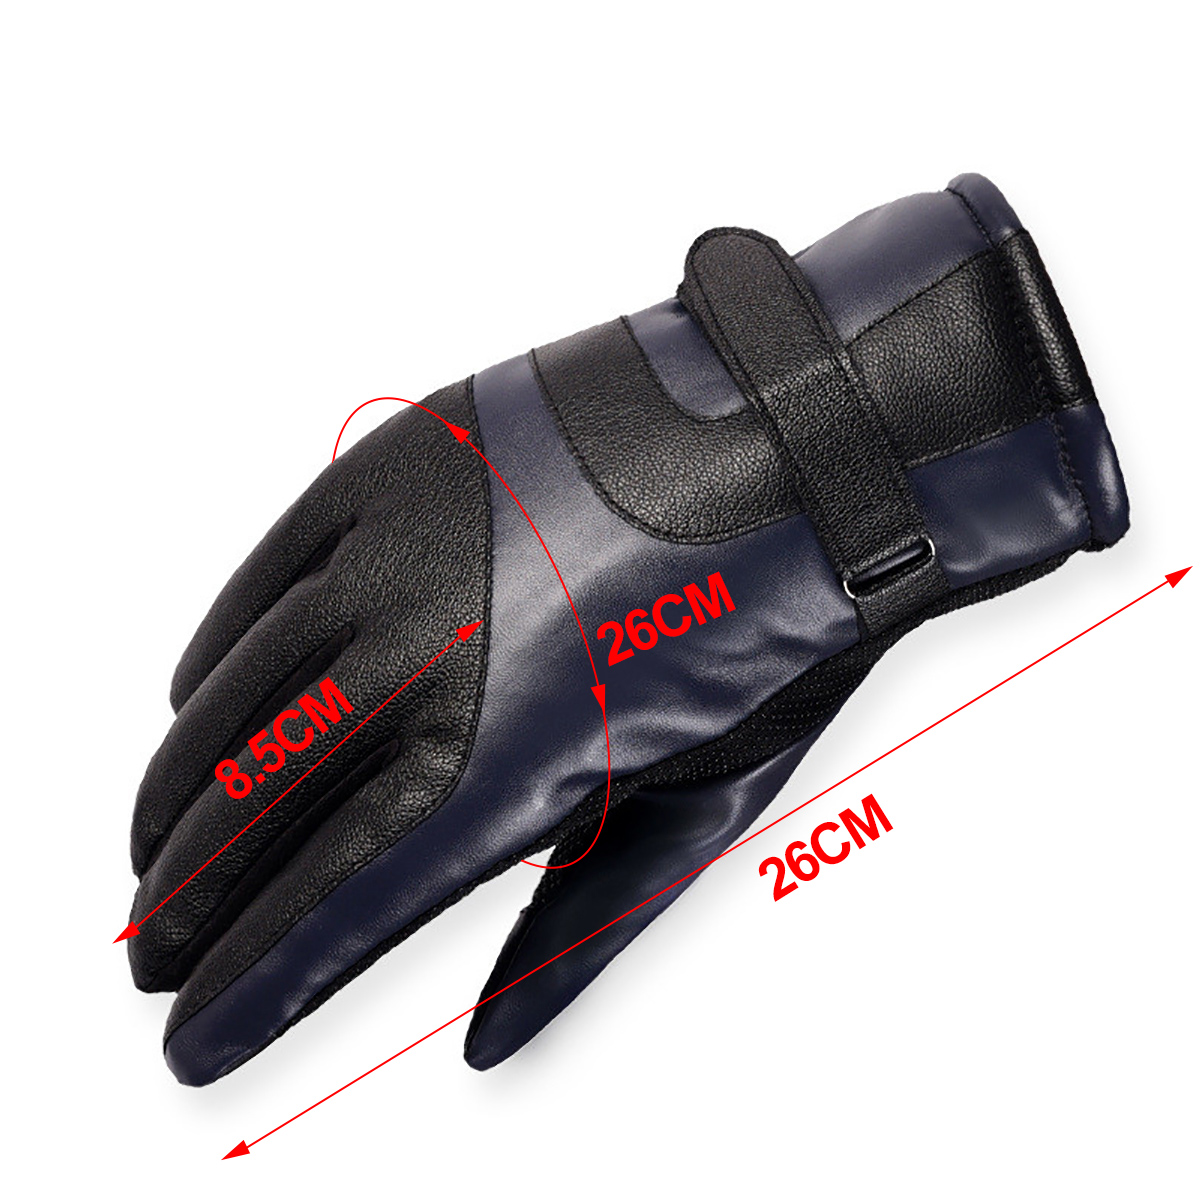 Ski Gloves Leather Men Women Winter Thermal Warmer Touchscreen Glove Camouflage Windproof Waterproof Cycling Motorcycle Gloves